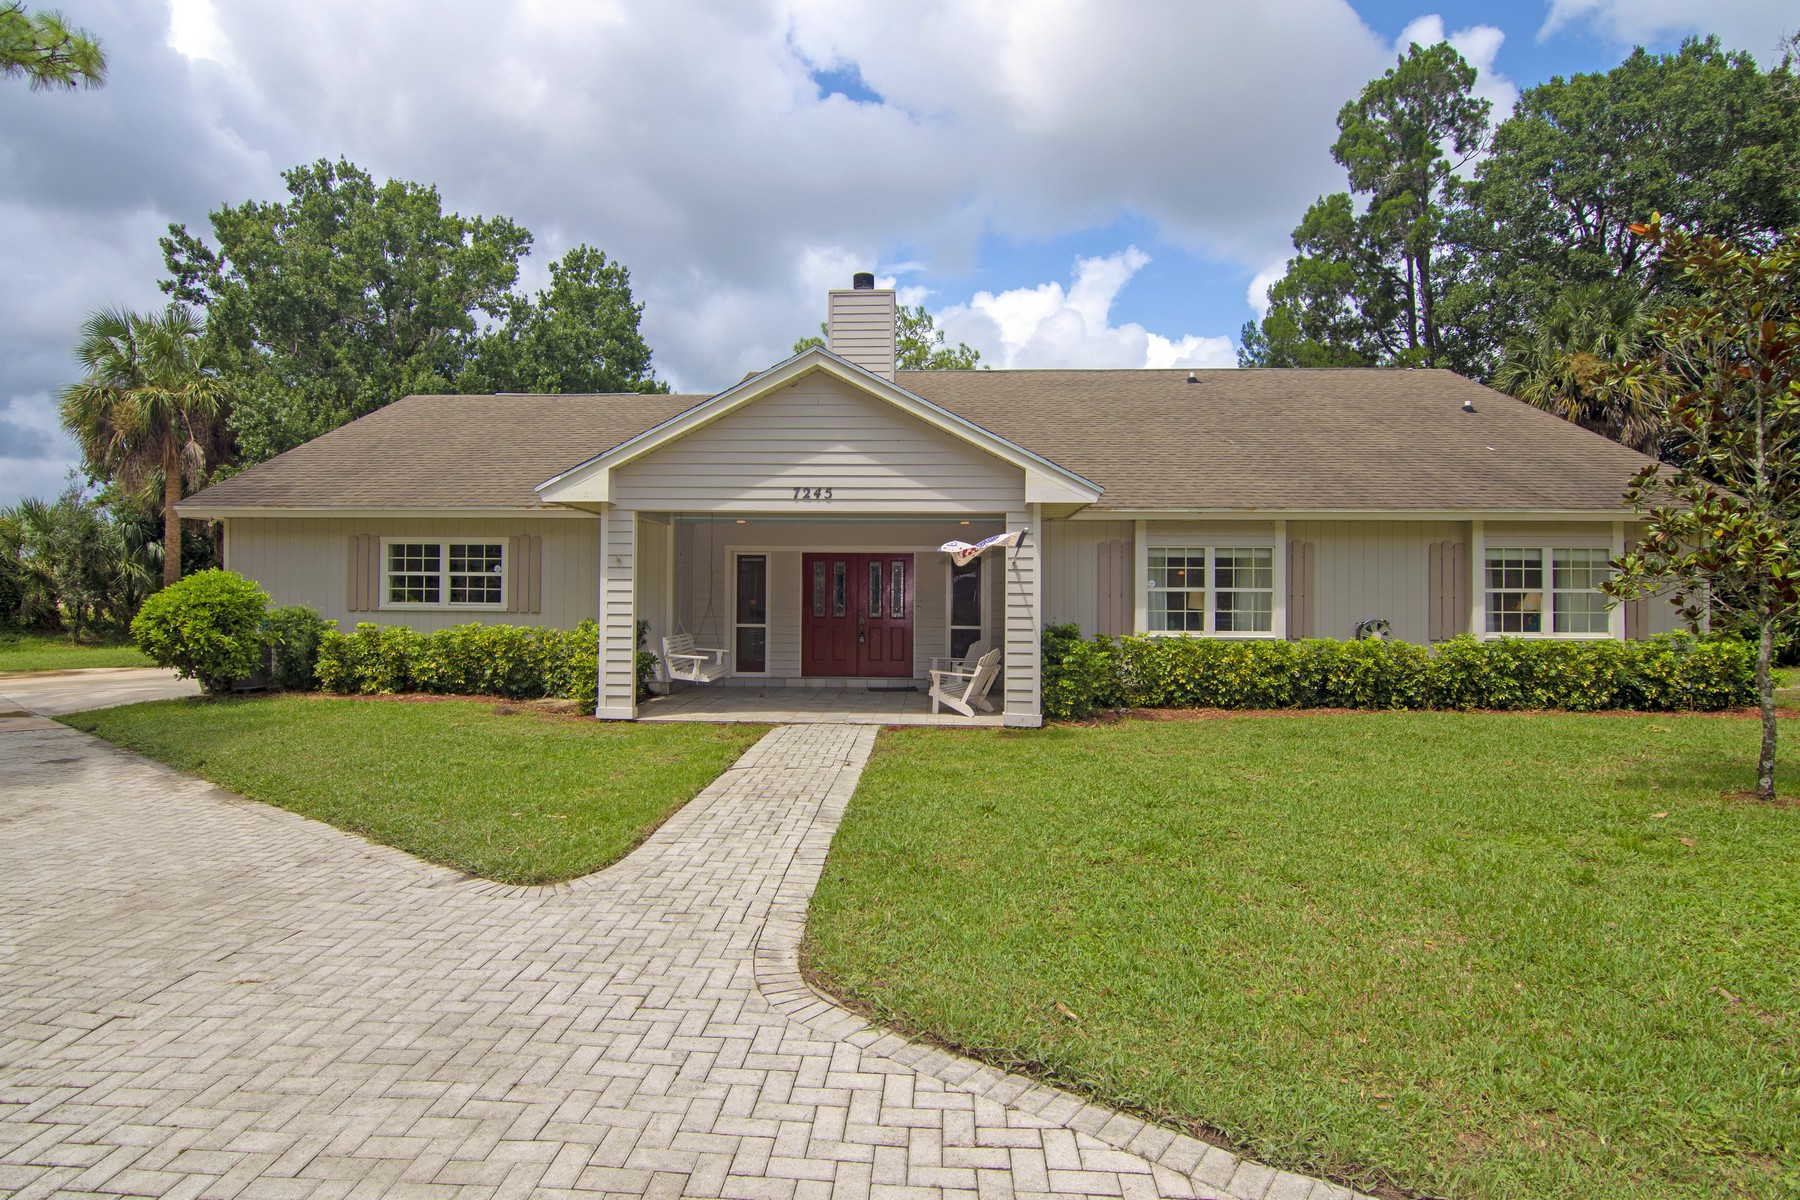 Property for Sale at PARADISE ON 5 ACRES WITH DETACHED SHOP 7245 18th Street Vero Beach, Florida 32966 United States